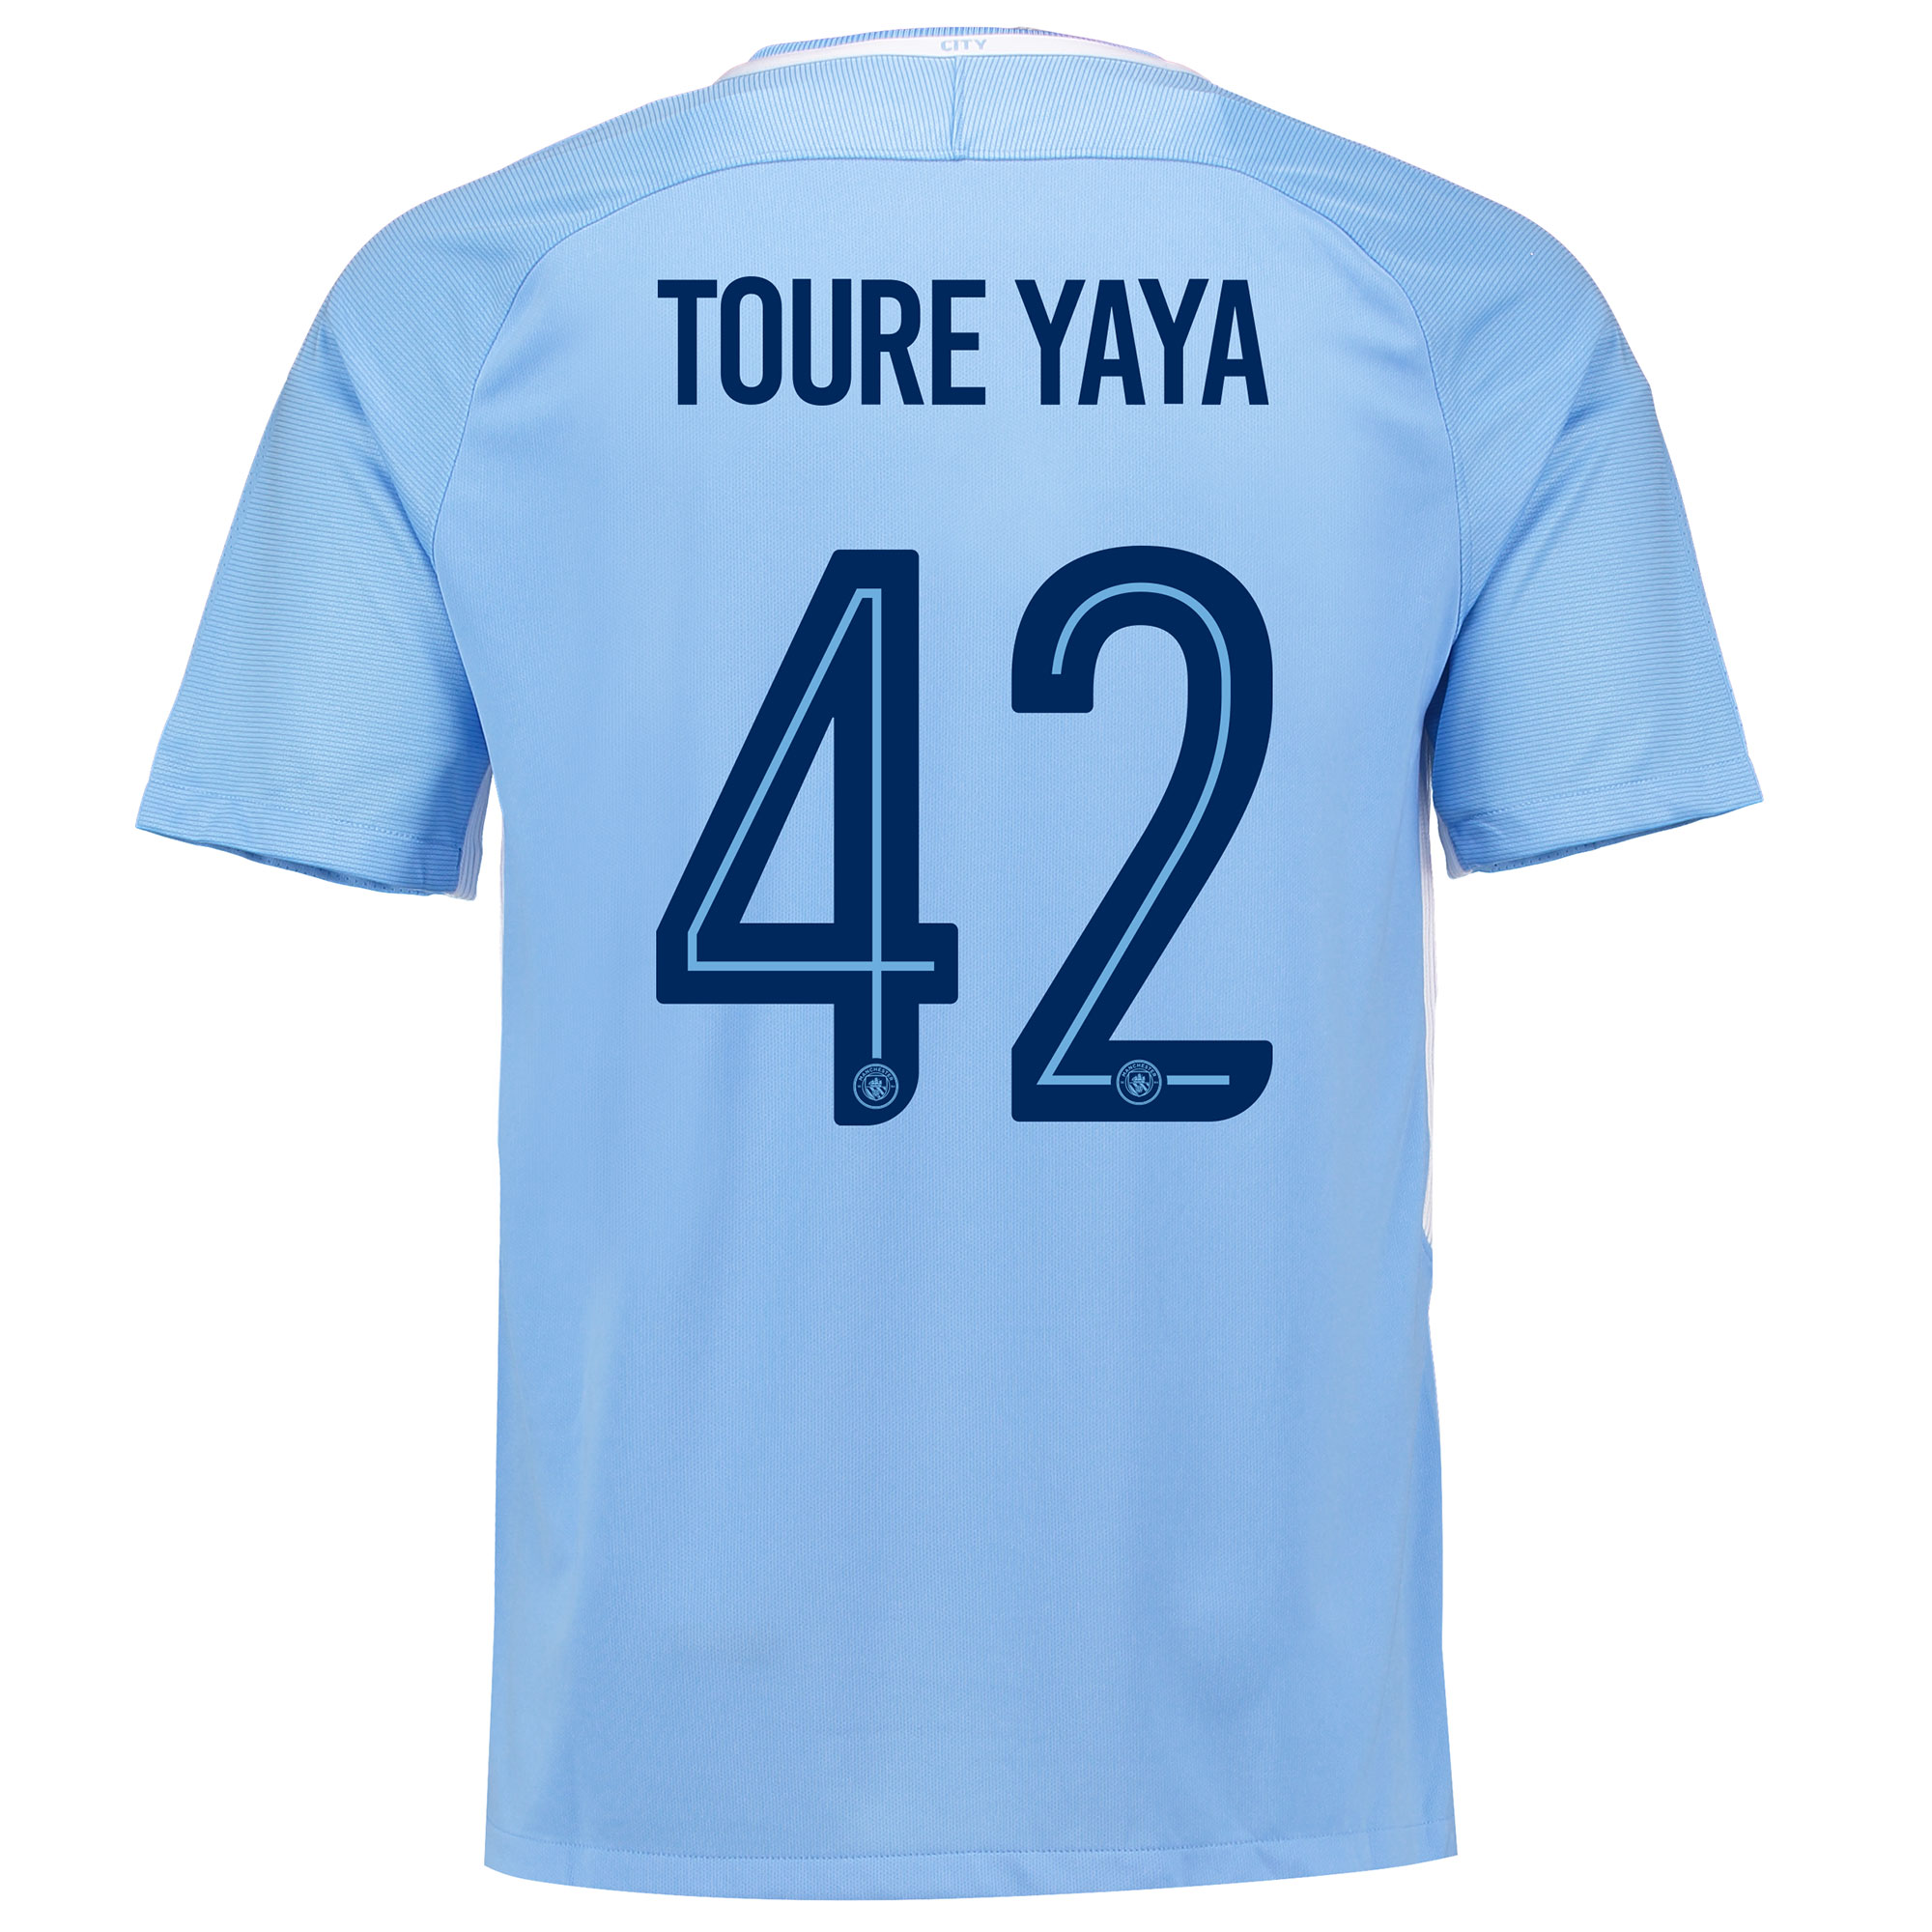 Manchester City Home Stadium Cup Shirt 2017-18 with Toure Yaya 42 prin